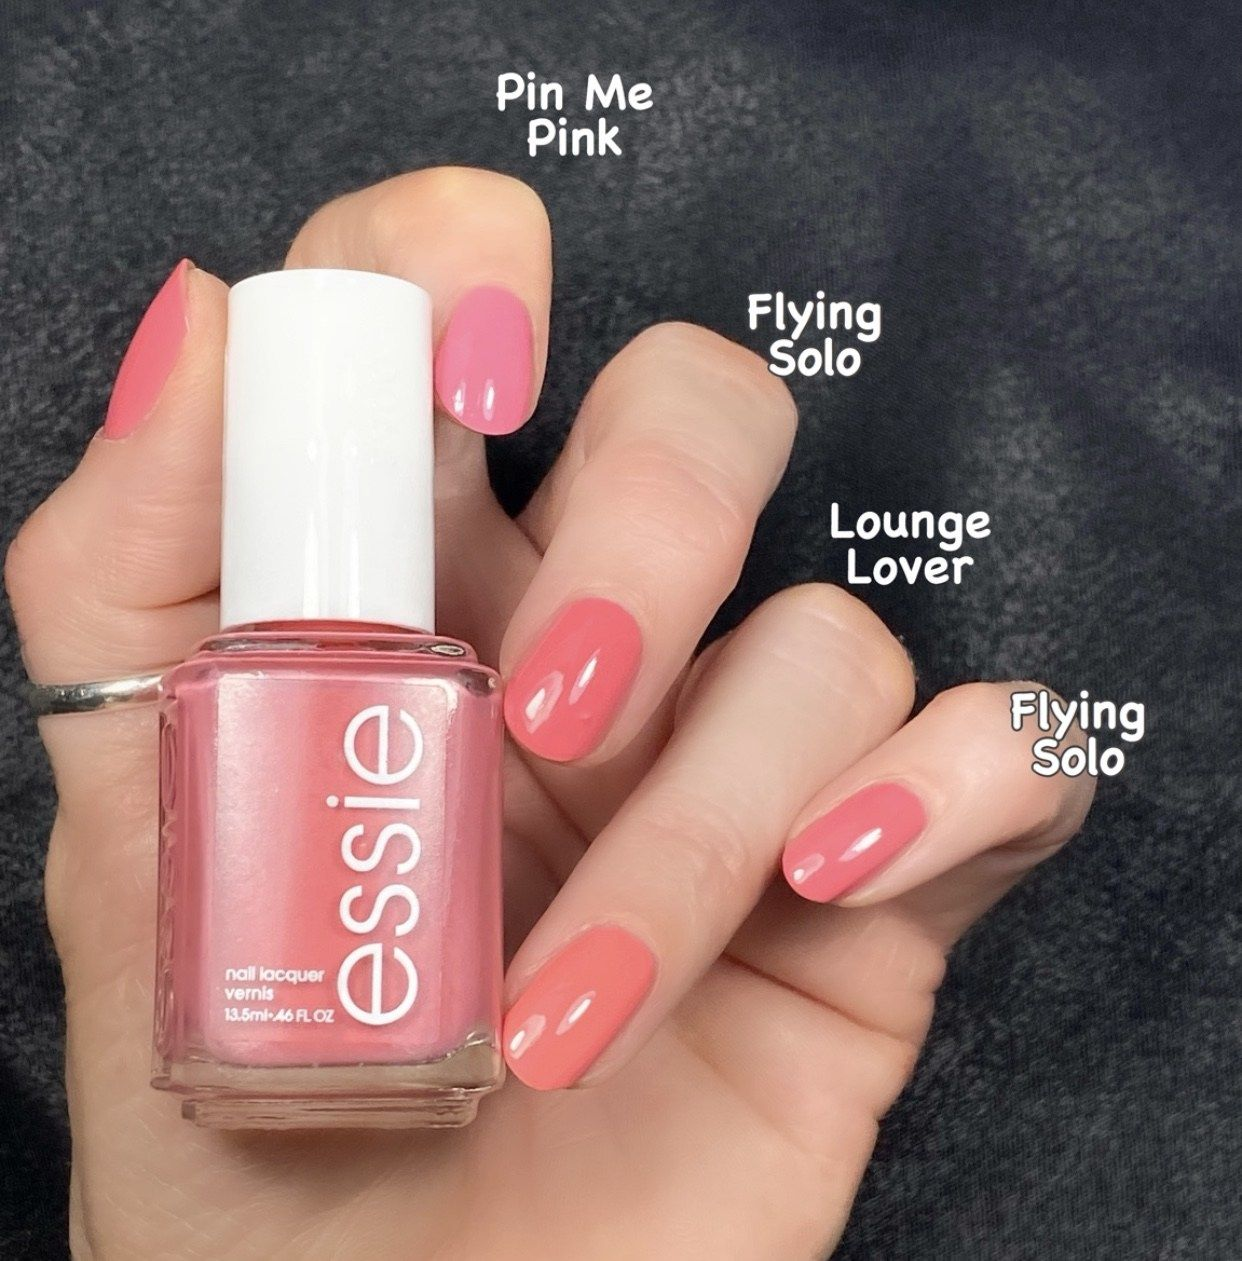 Essie Flying Solo Collection Comparison Swatches Livwithbiv In 2020 Essie Nail Colors Essie Essie Nail